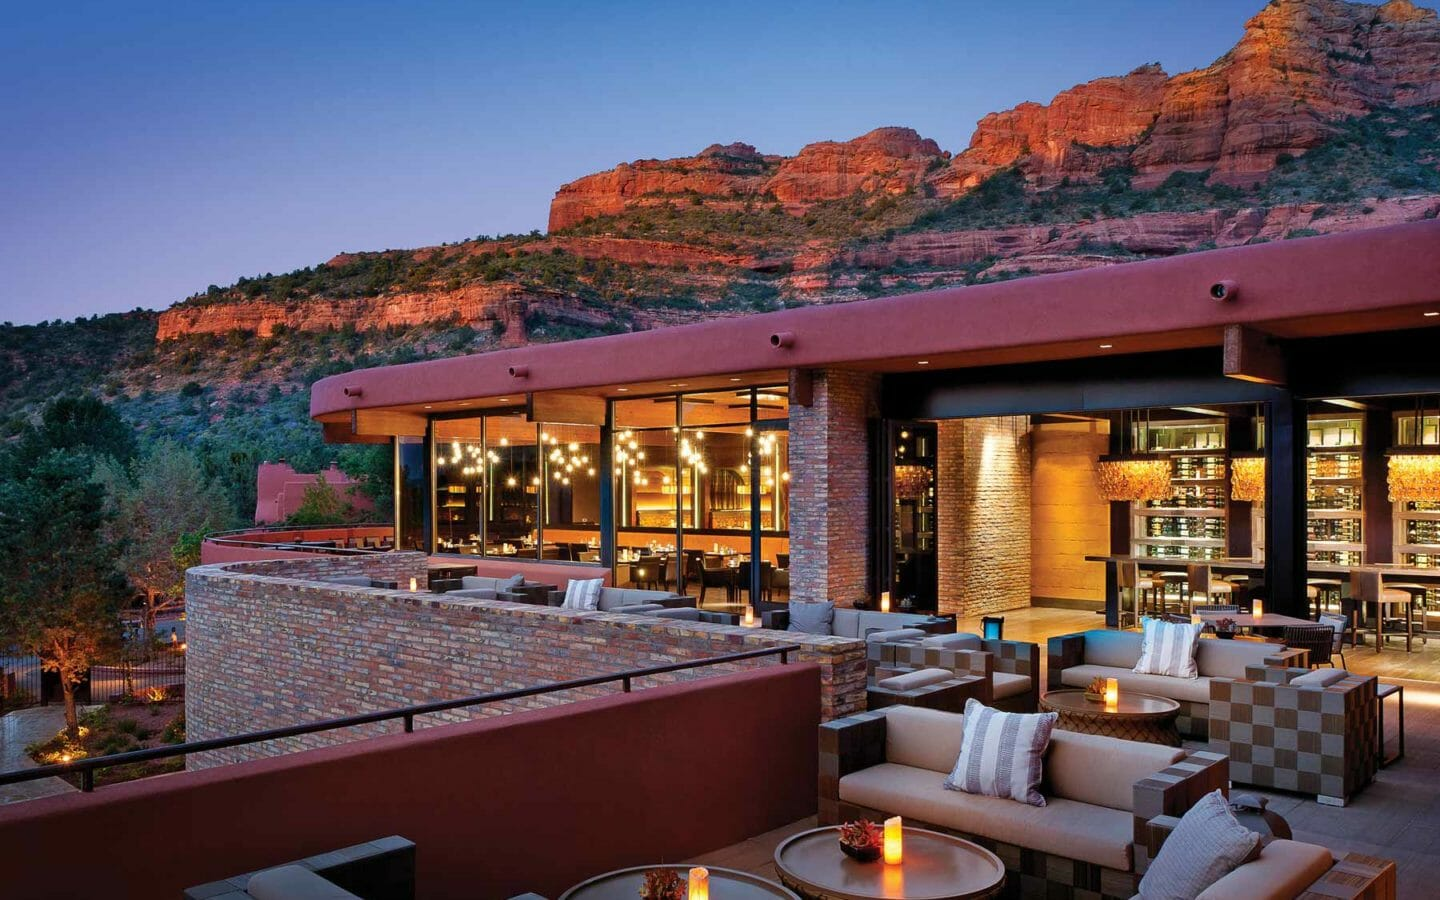 Che Ah Chi Restaurant with Views in Sedona